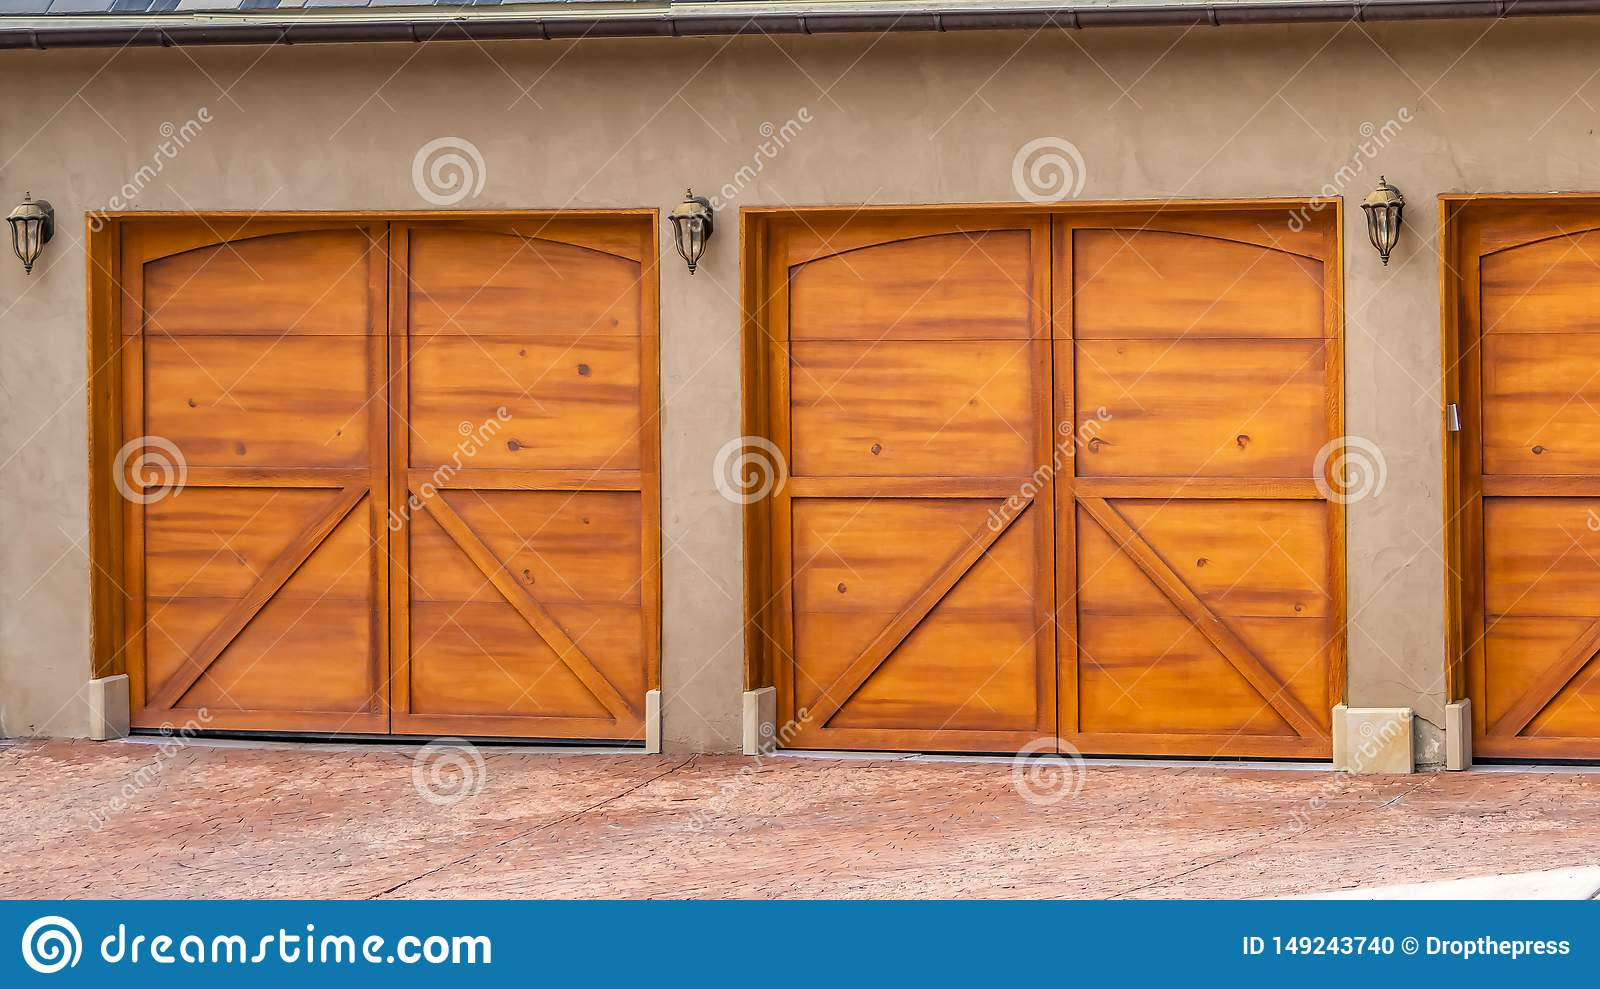 Panorama House Exterior With Gray And White Roof And Stylish Wooden Garage Doors Stock Photo Image Of Door Exterior 149243740